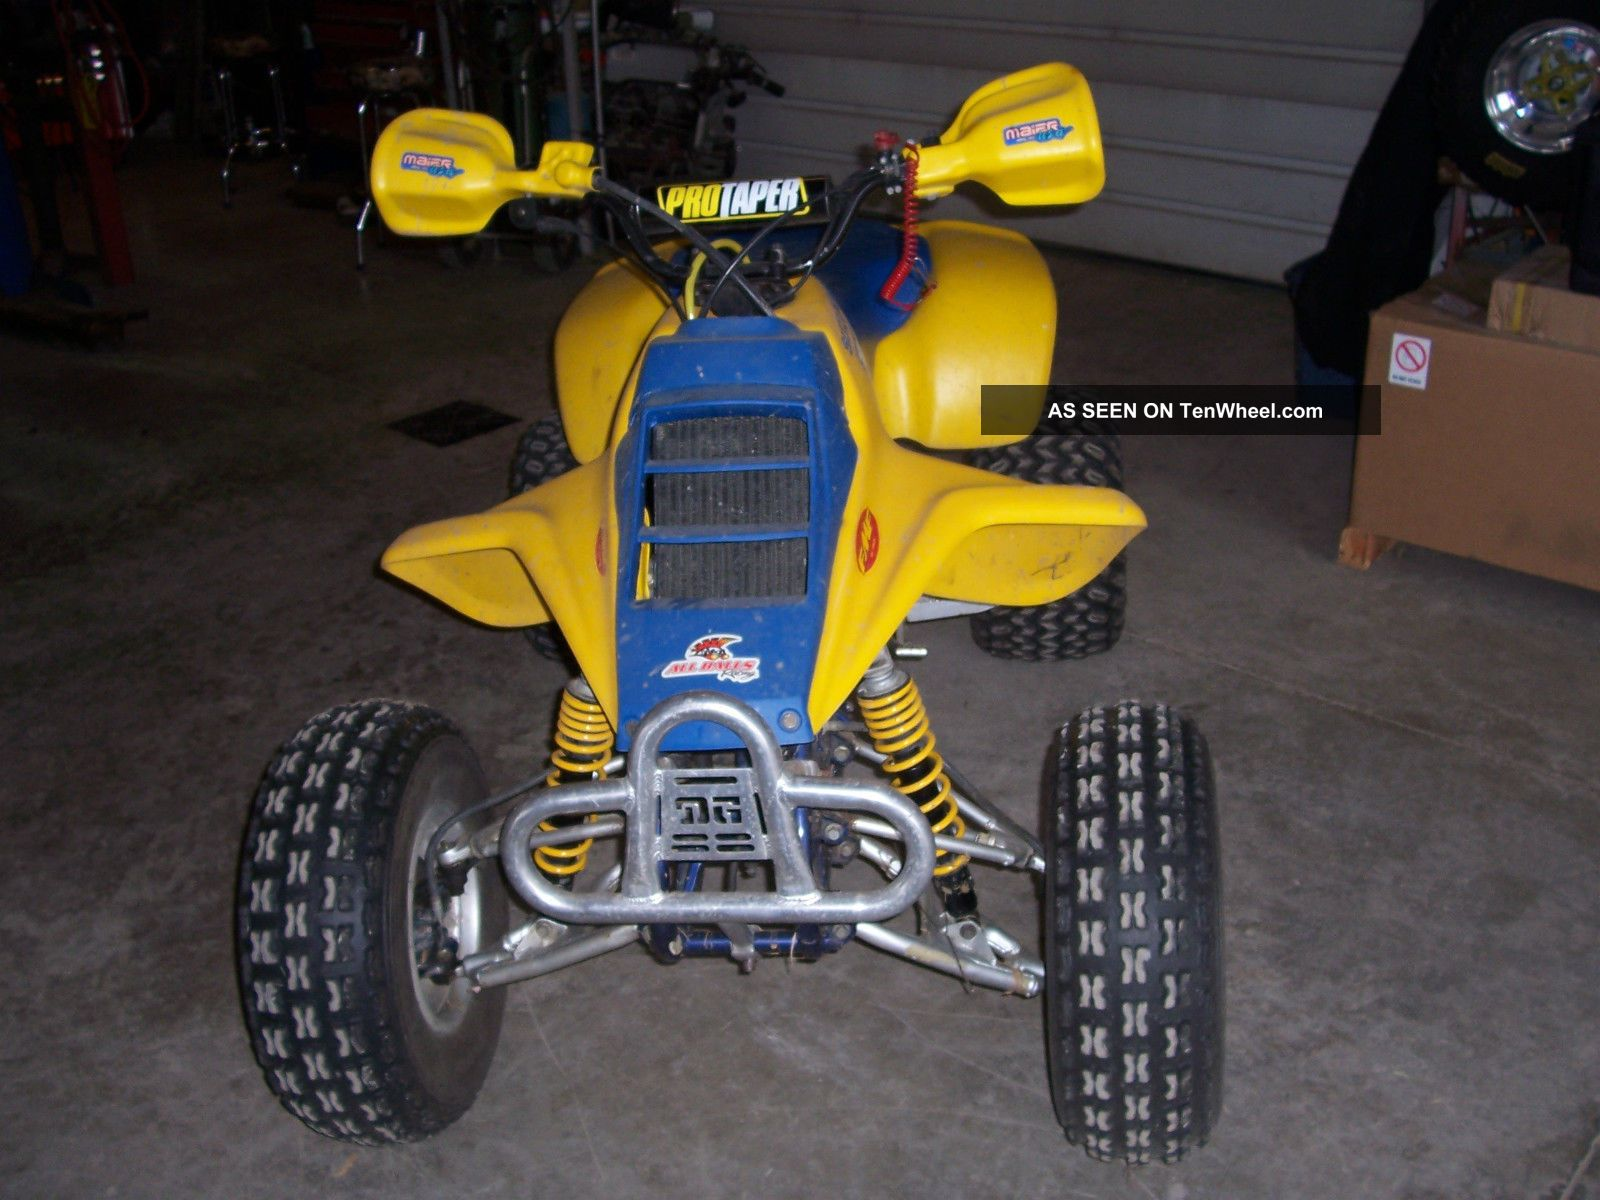 1989 Suzuki Lt250r Quadracer Suzuki photo